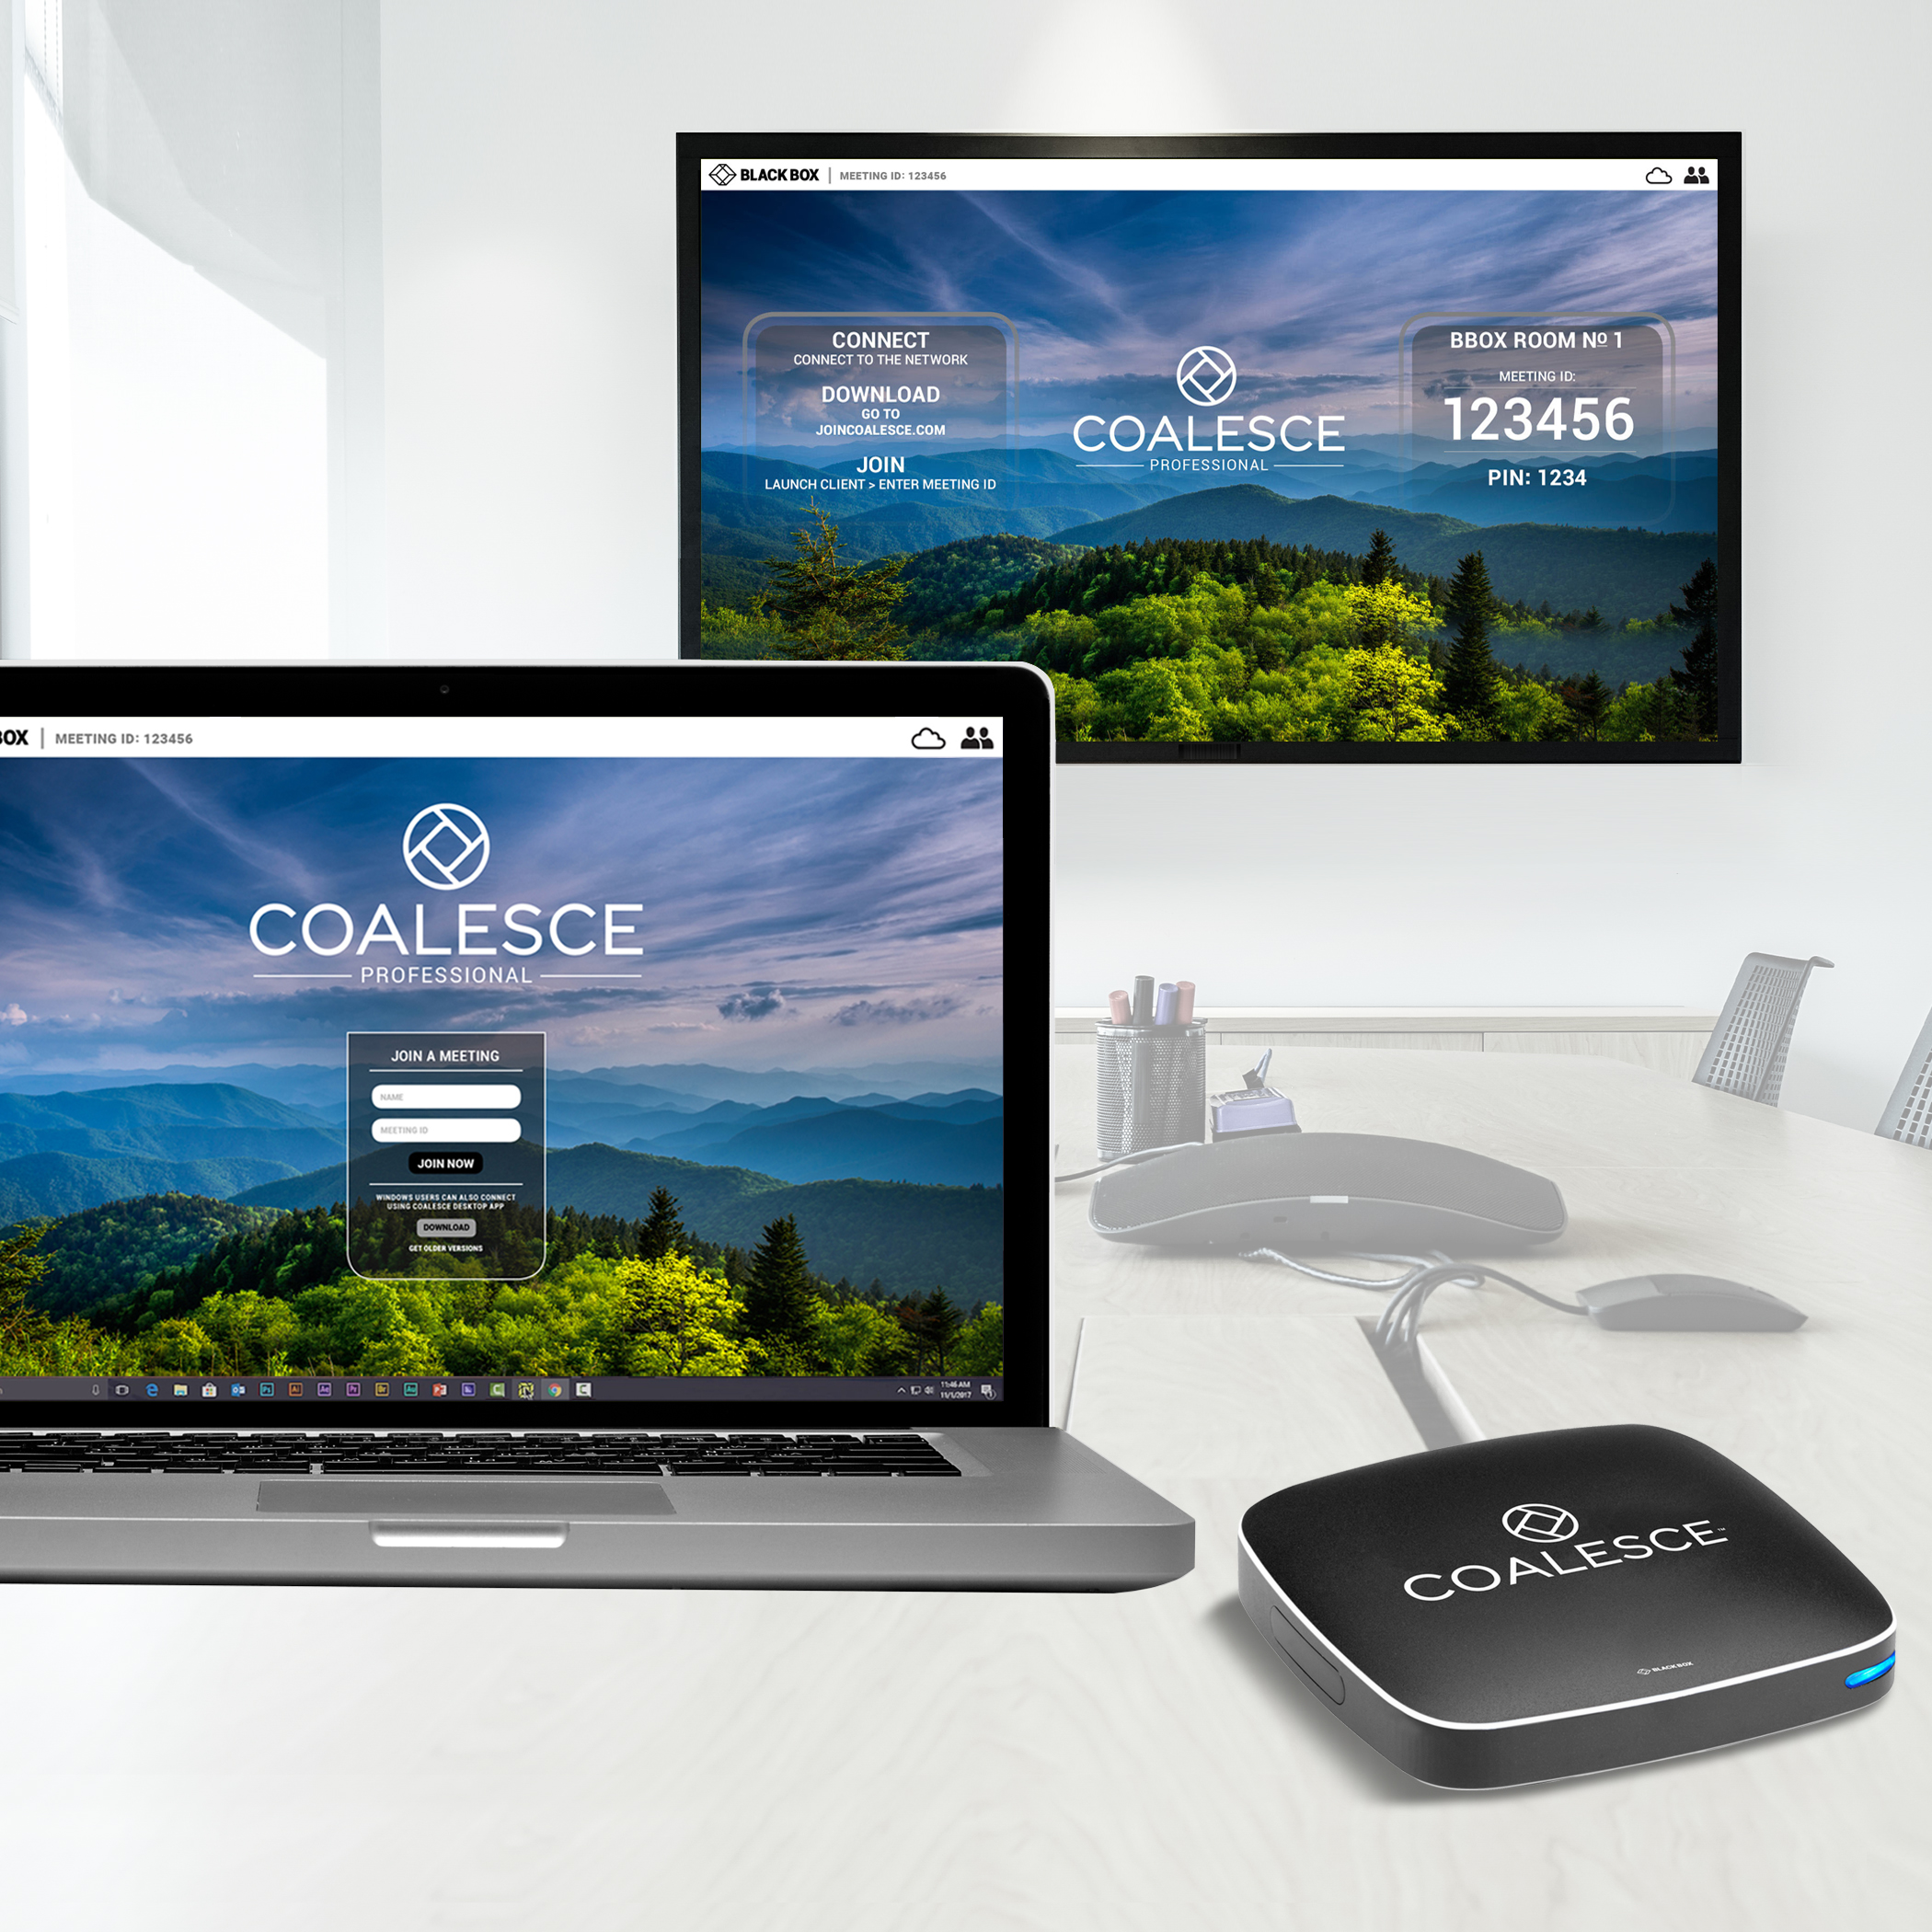 Connect Wc Videoconferencing Wireless Presentation System Coalesce Pro